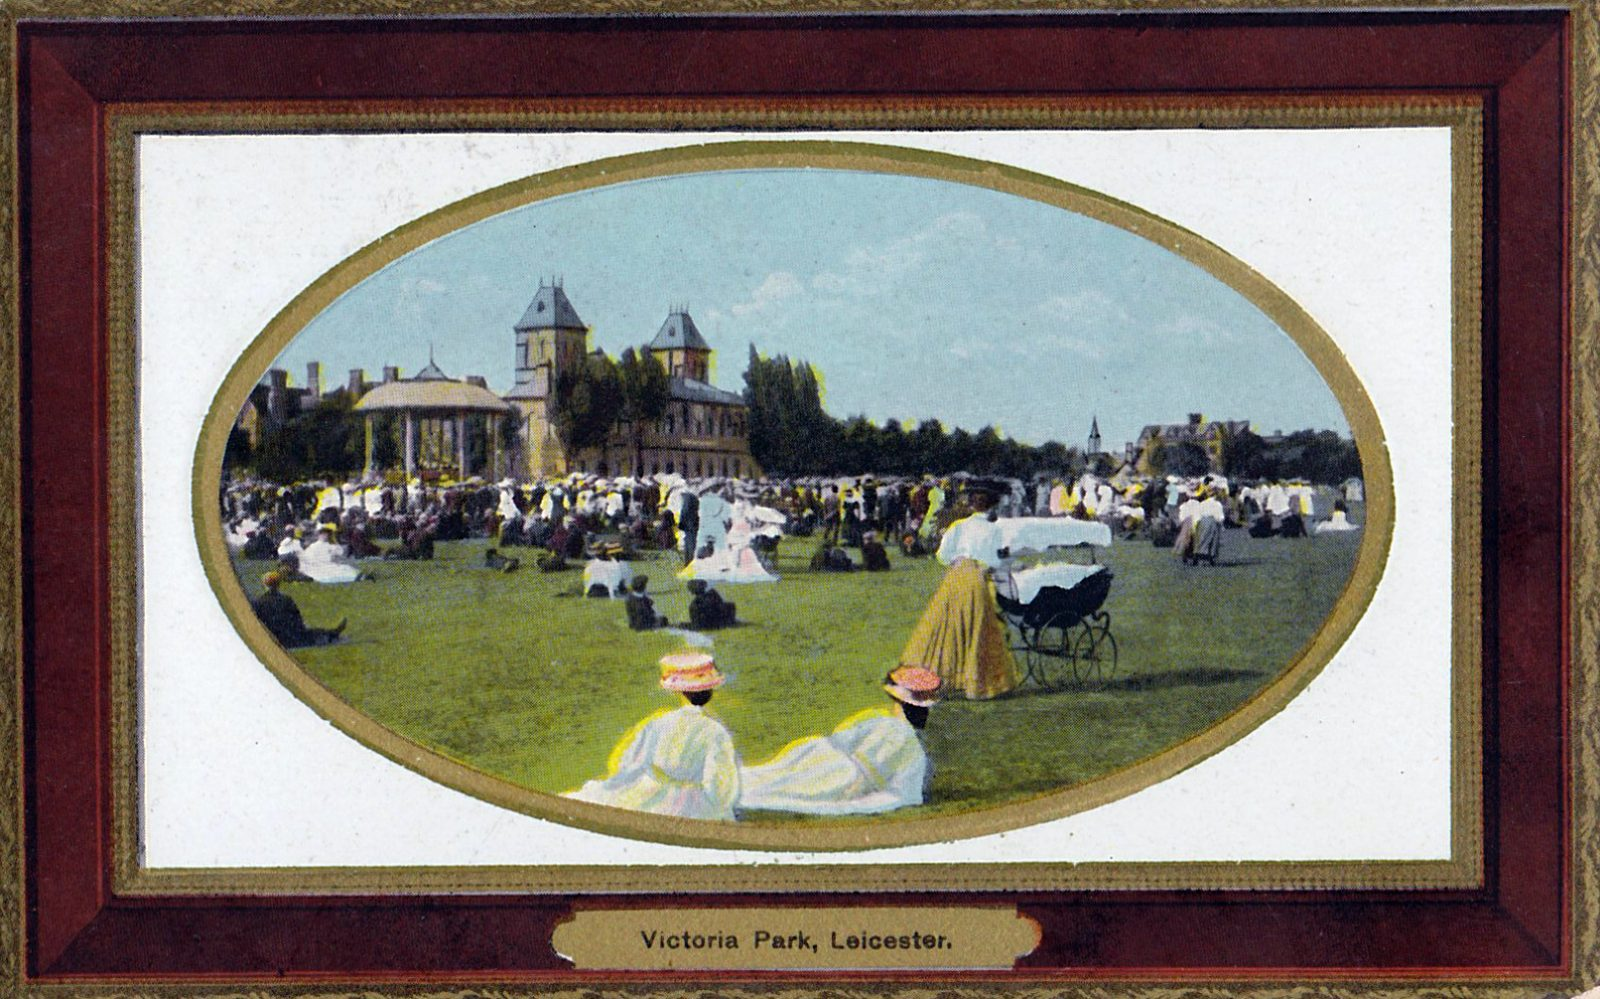 Victoria Park, Leicester. 1901-1920: The Pavilion and bandstand with many people. Franked 1912 (File:1445)